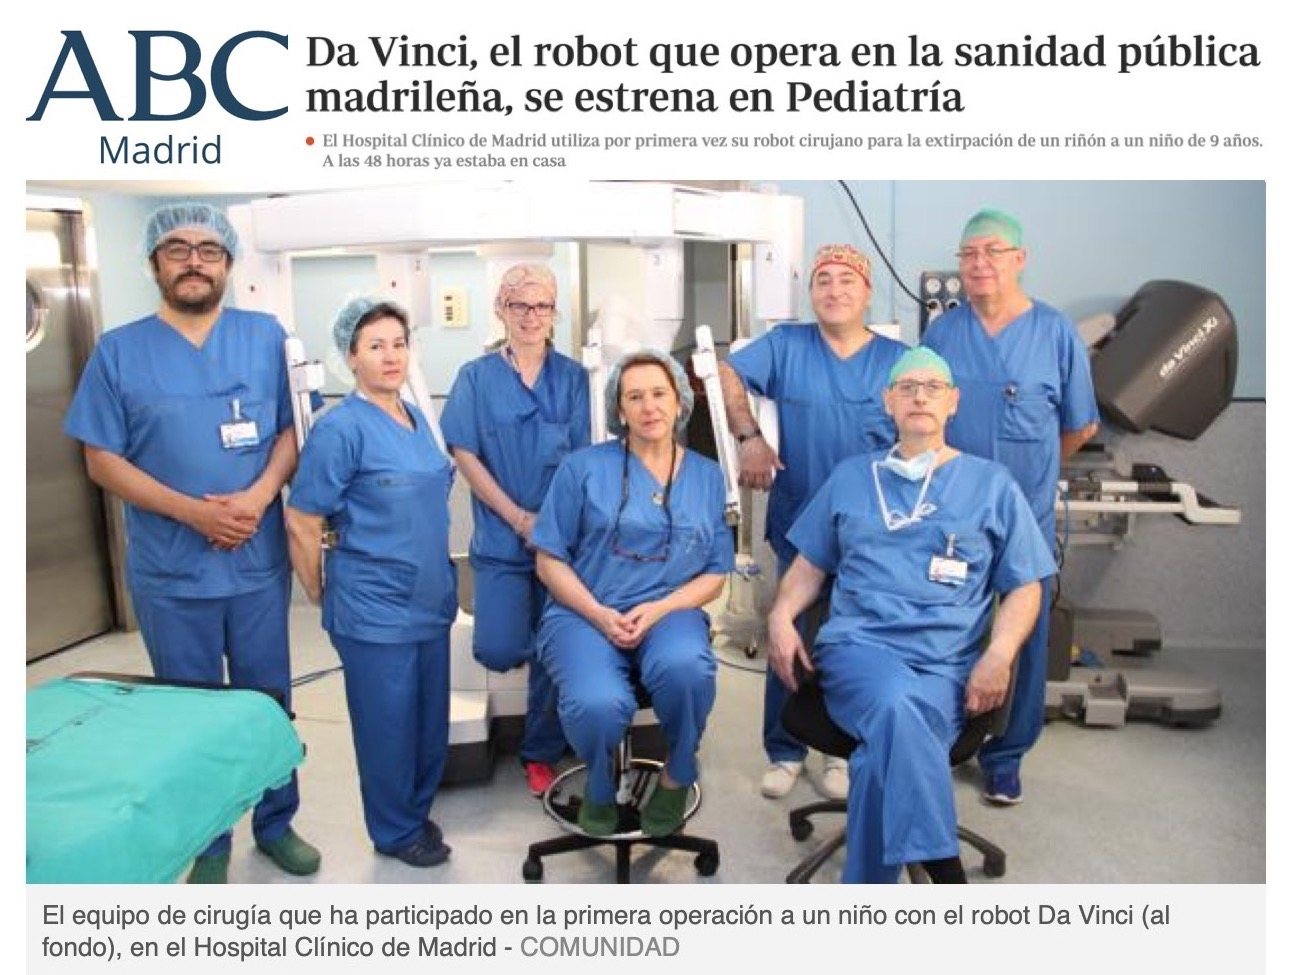 secla noticias abc da vinci pediatria